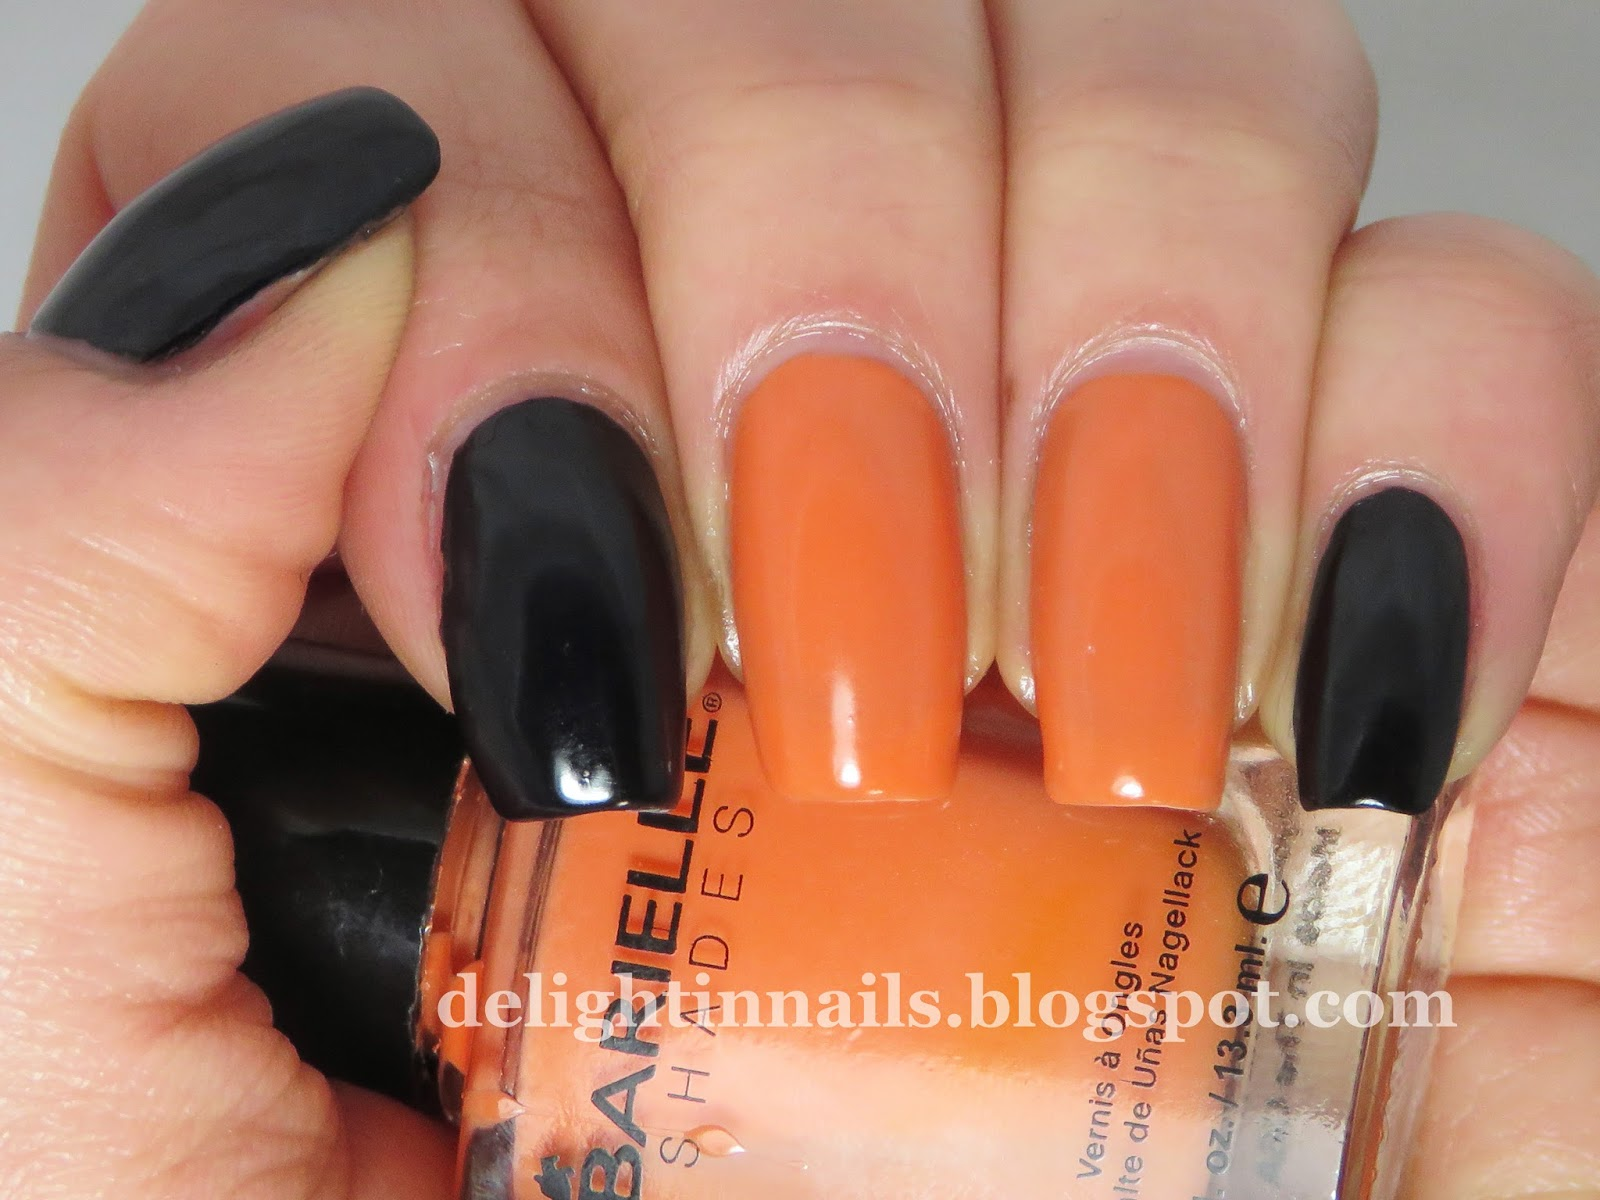 delight in nails: 40 great nail art ideas - halloween